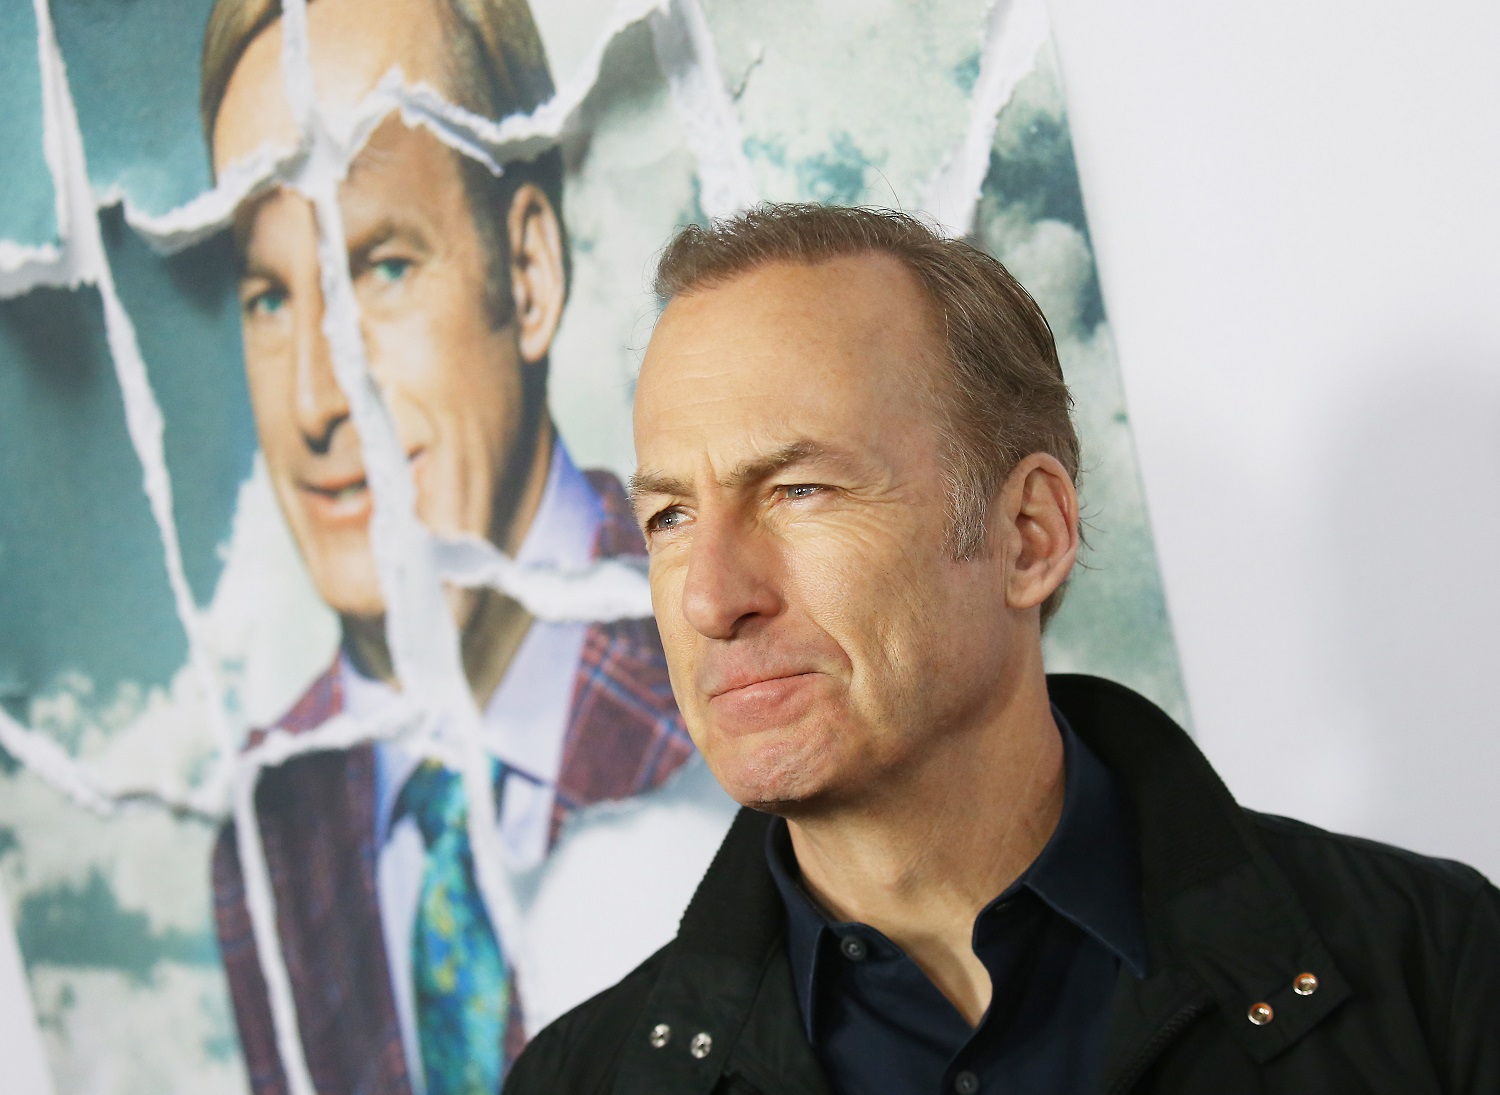 Bob Odenkirk previously wrote for SNL